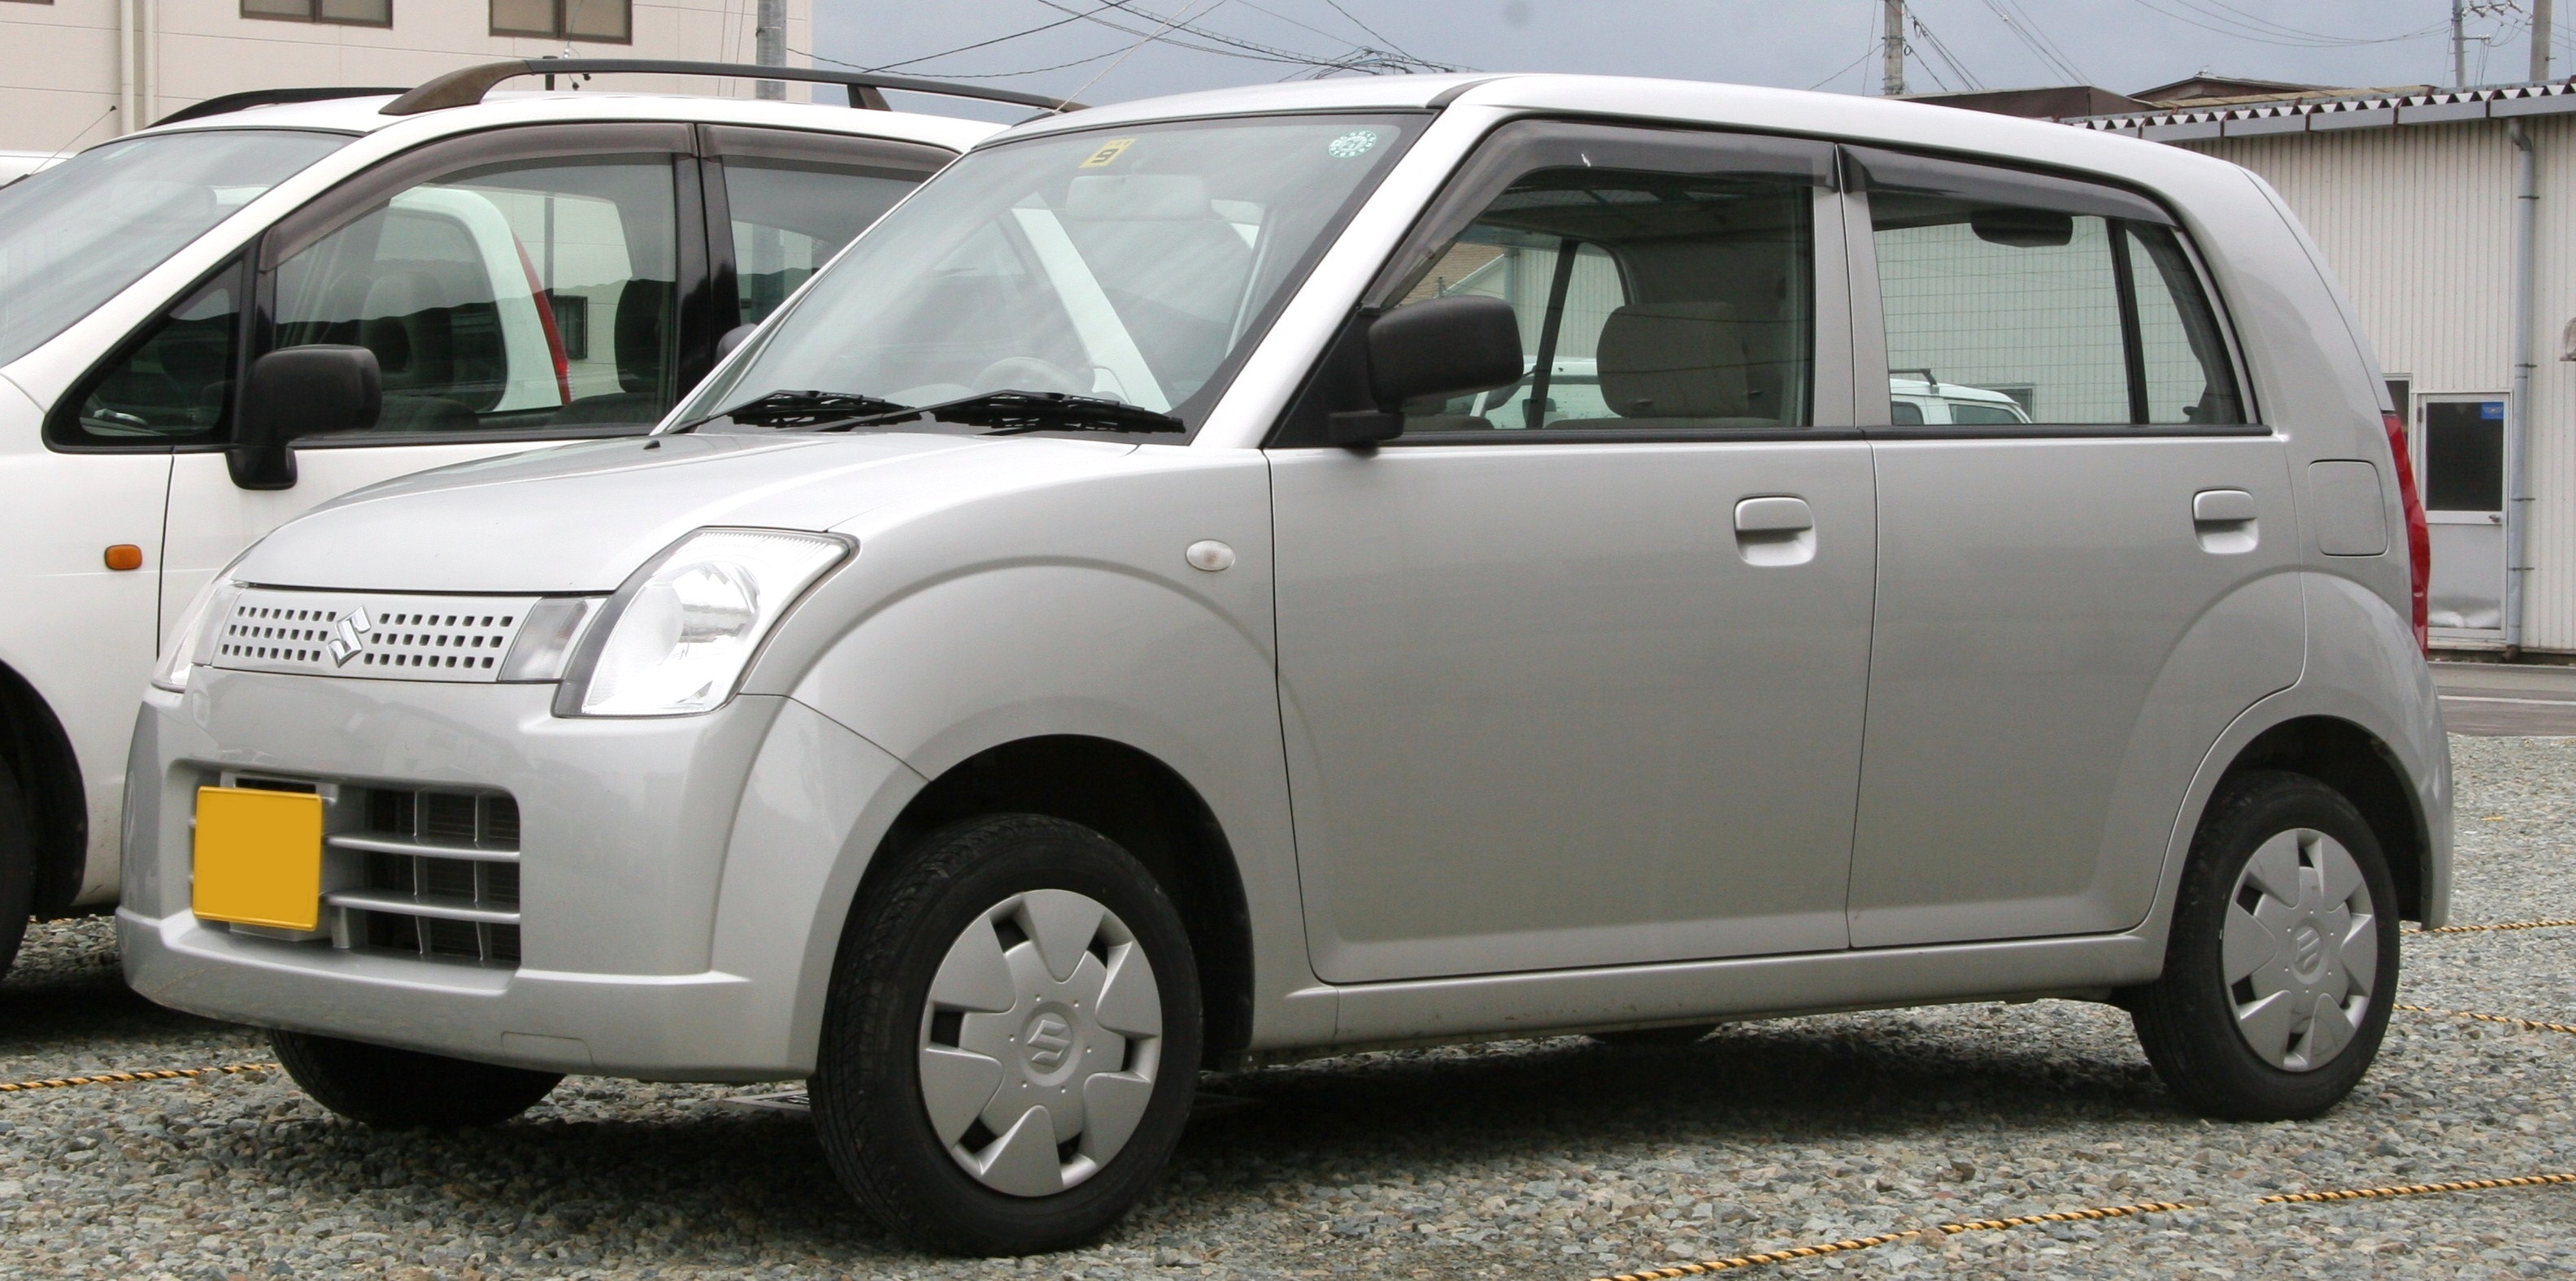 Suzuki Alto 2009 Exterior Side View